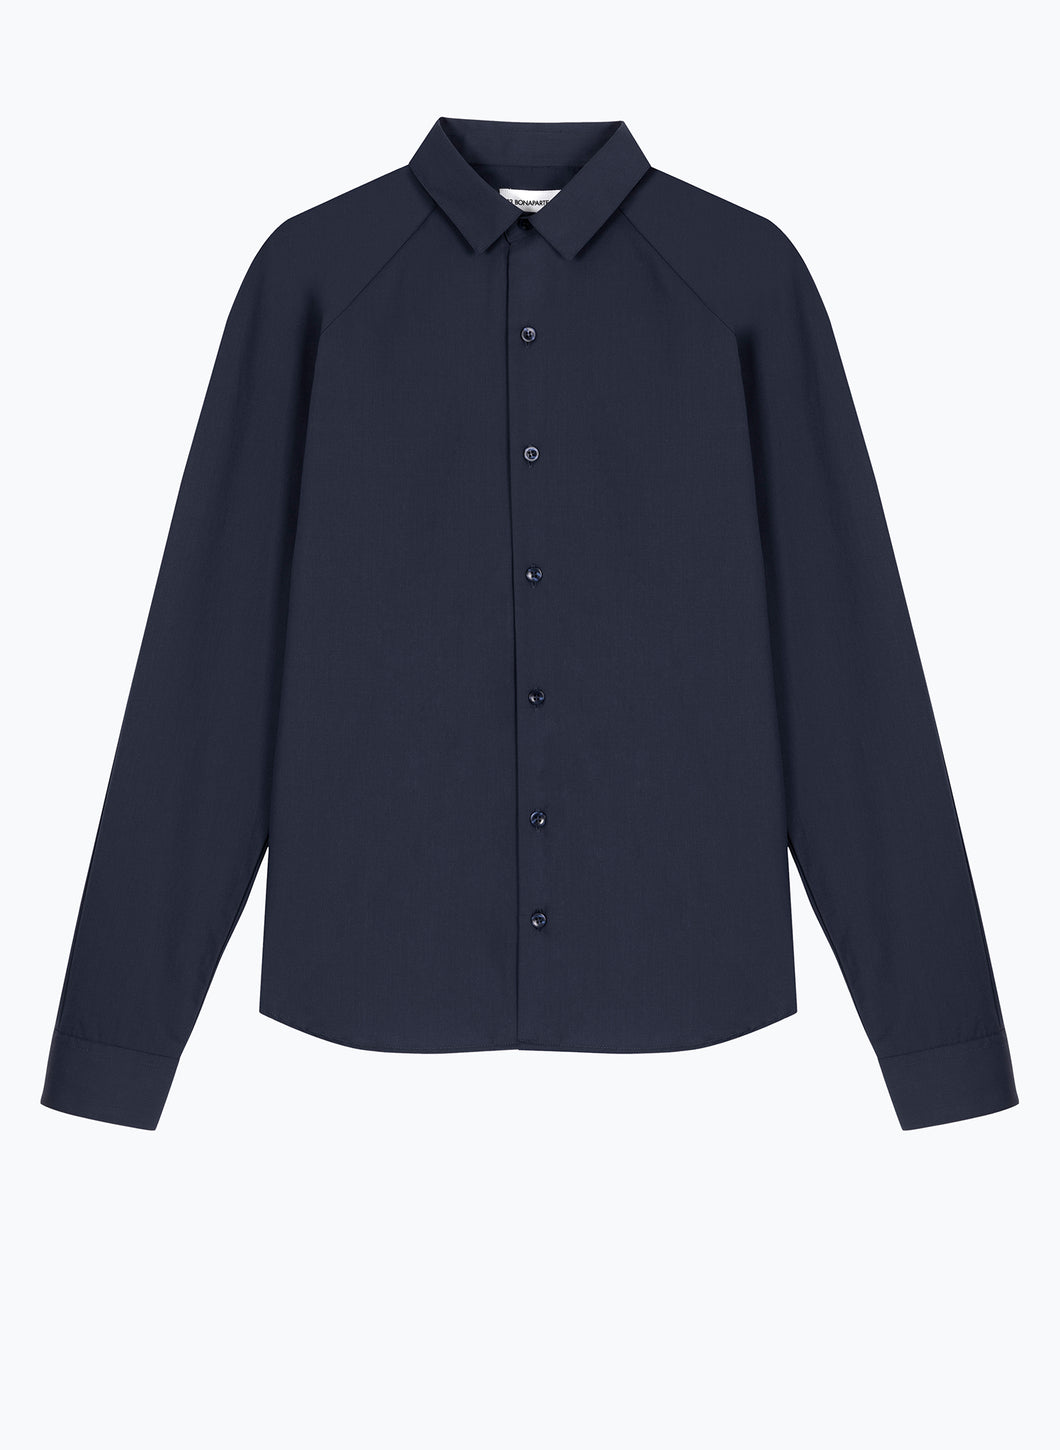 Raglan Sleeve Shirt in Navy Blue Poplin